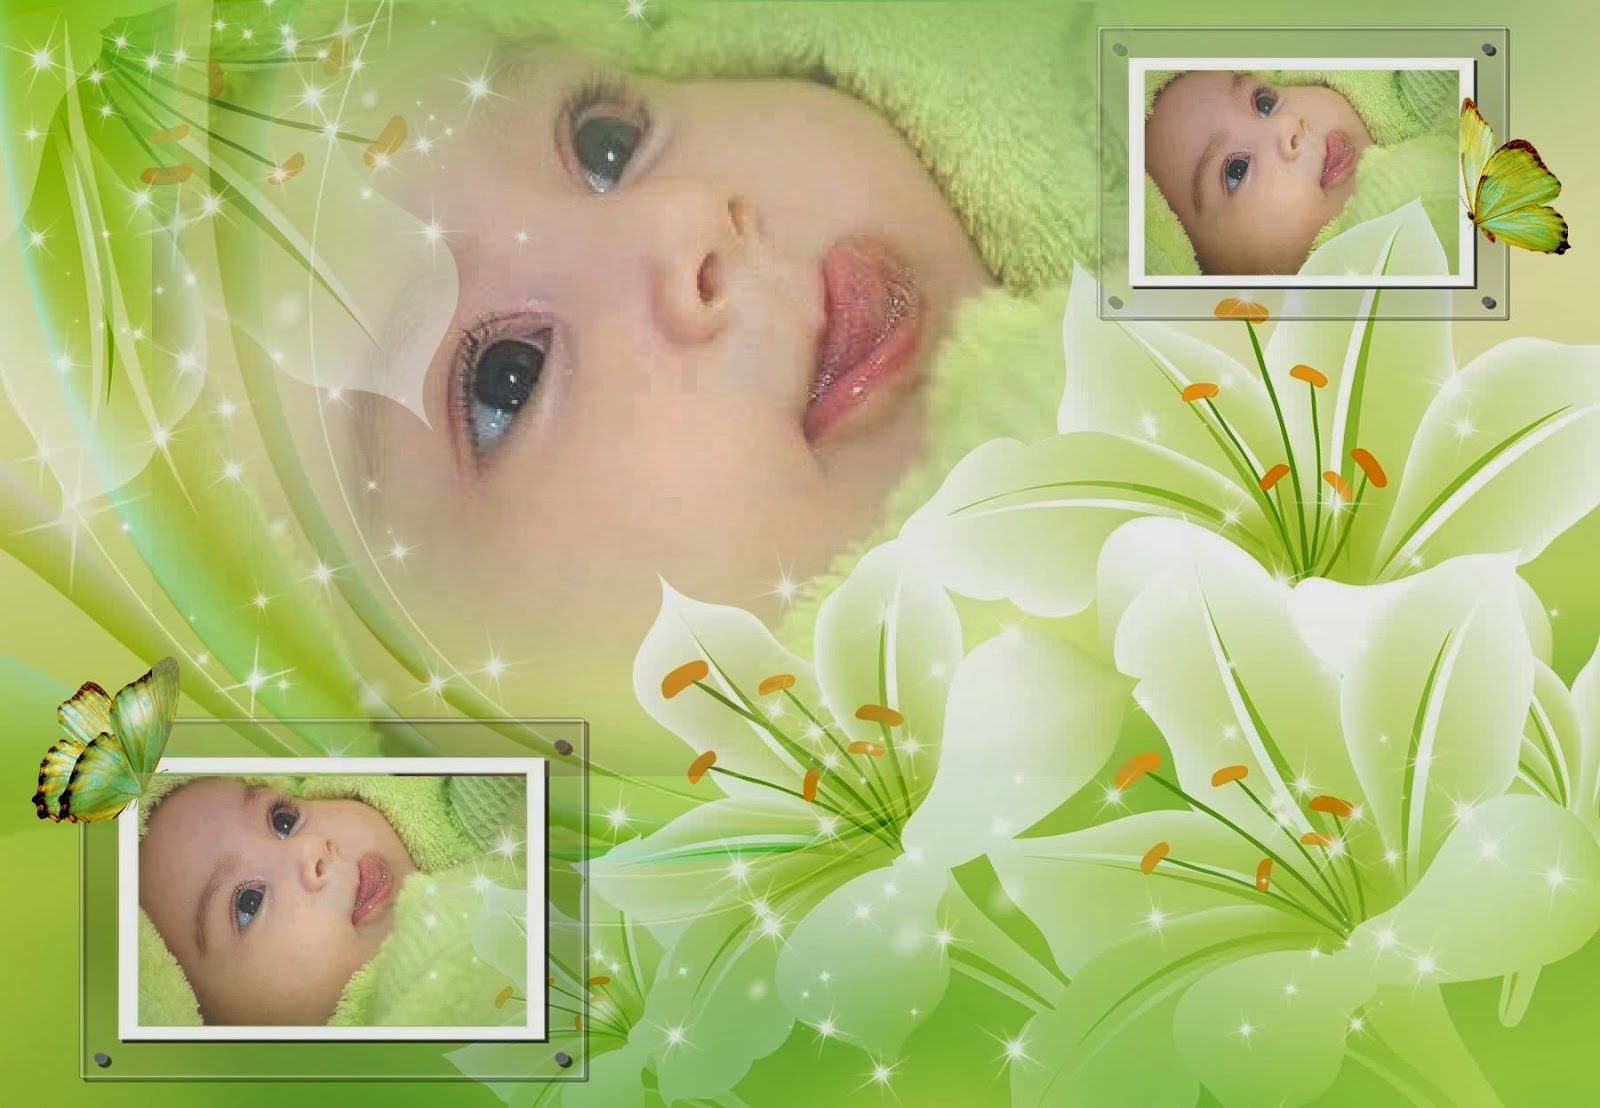 Cute Baby Wallpapers Hd Free: Download Free High Definition